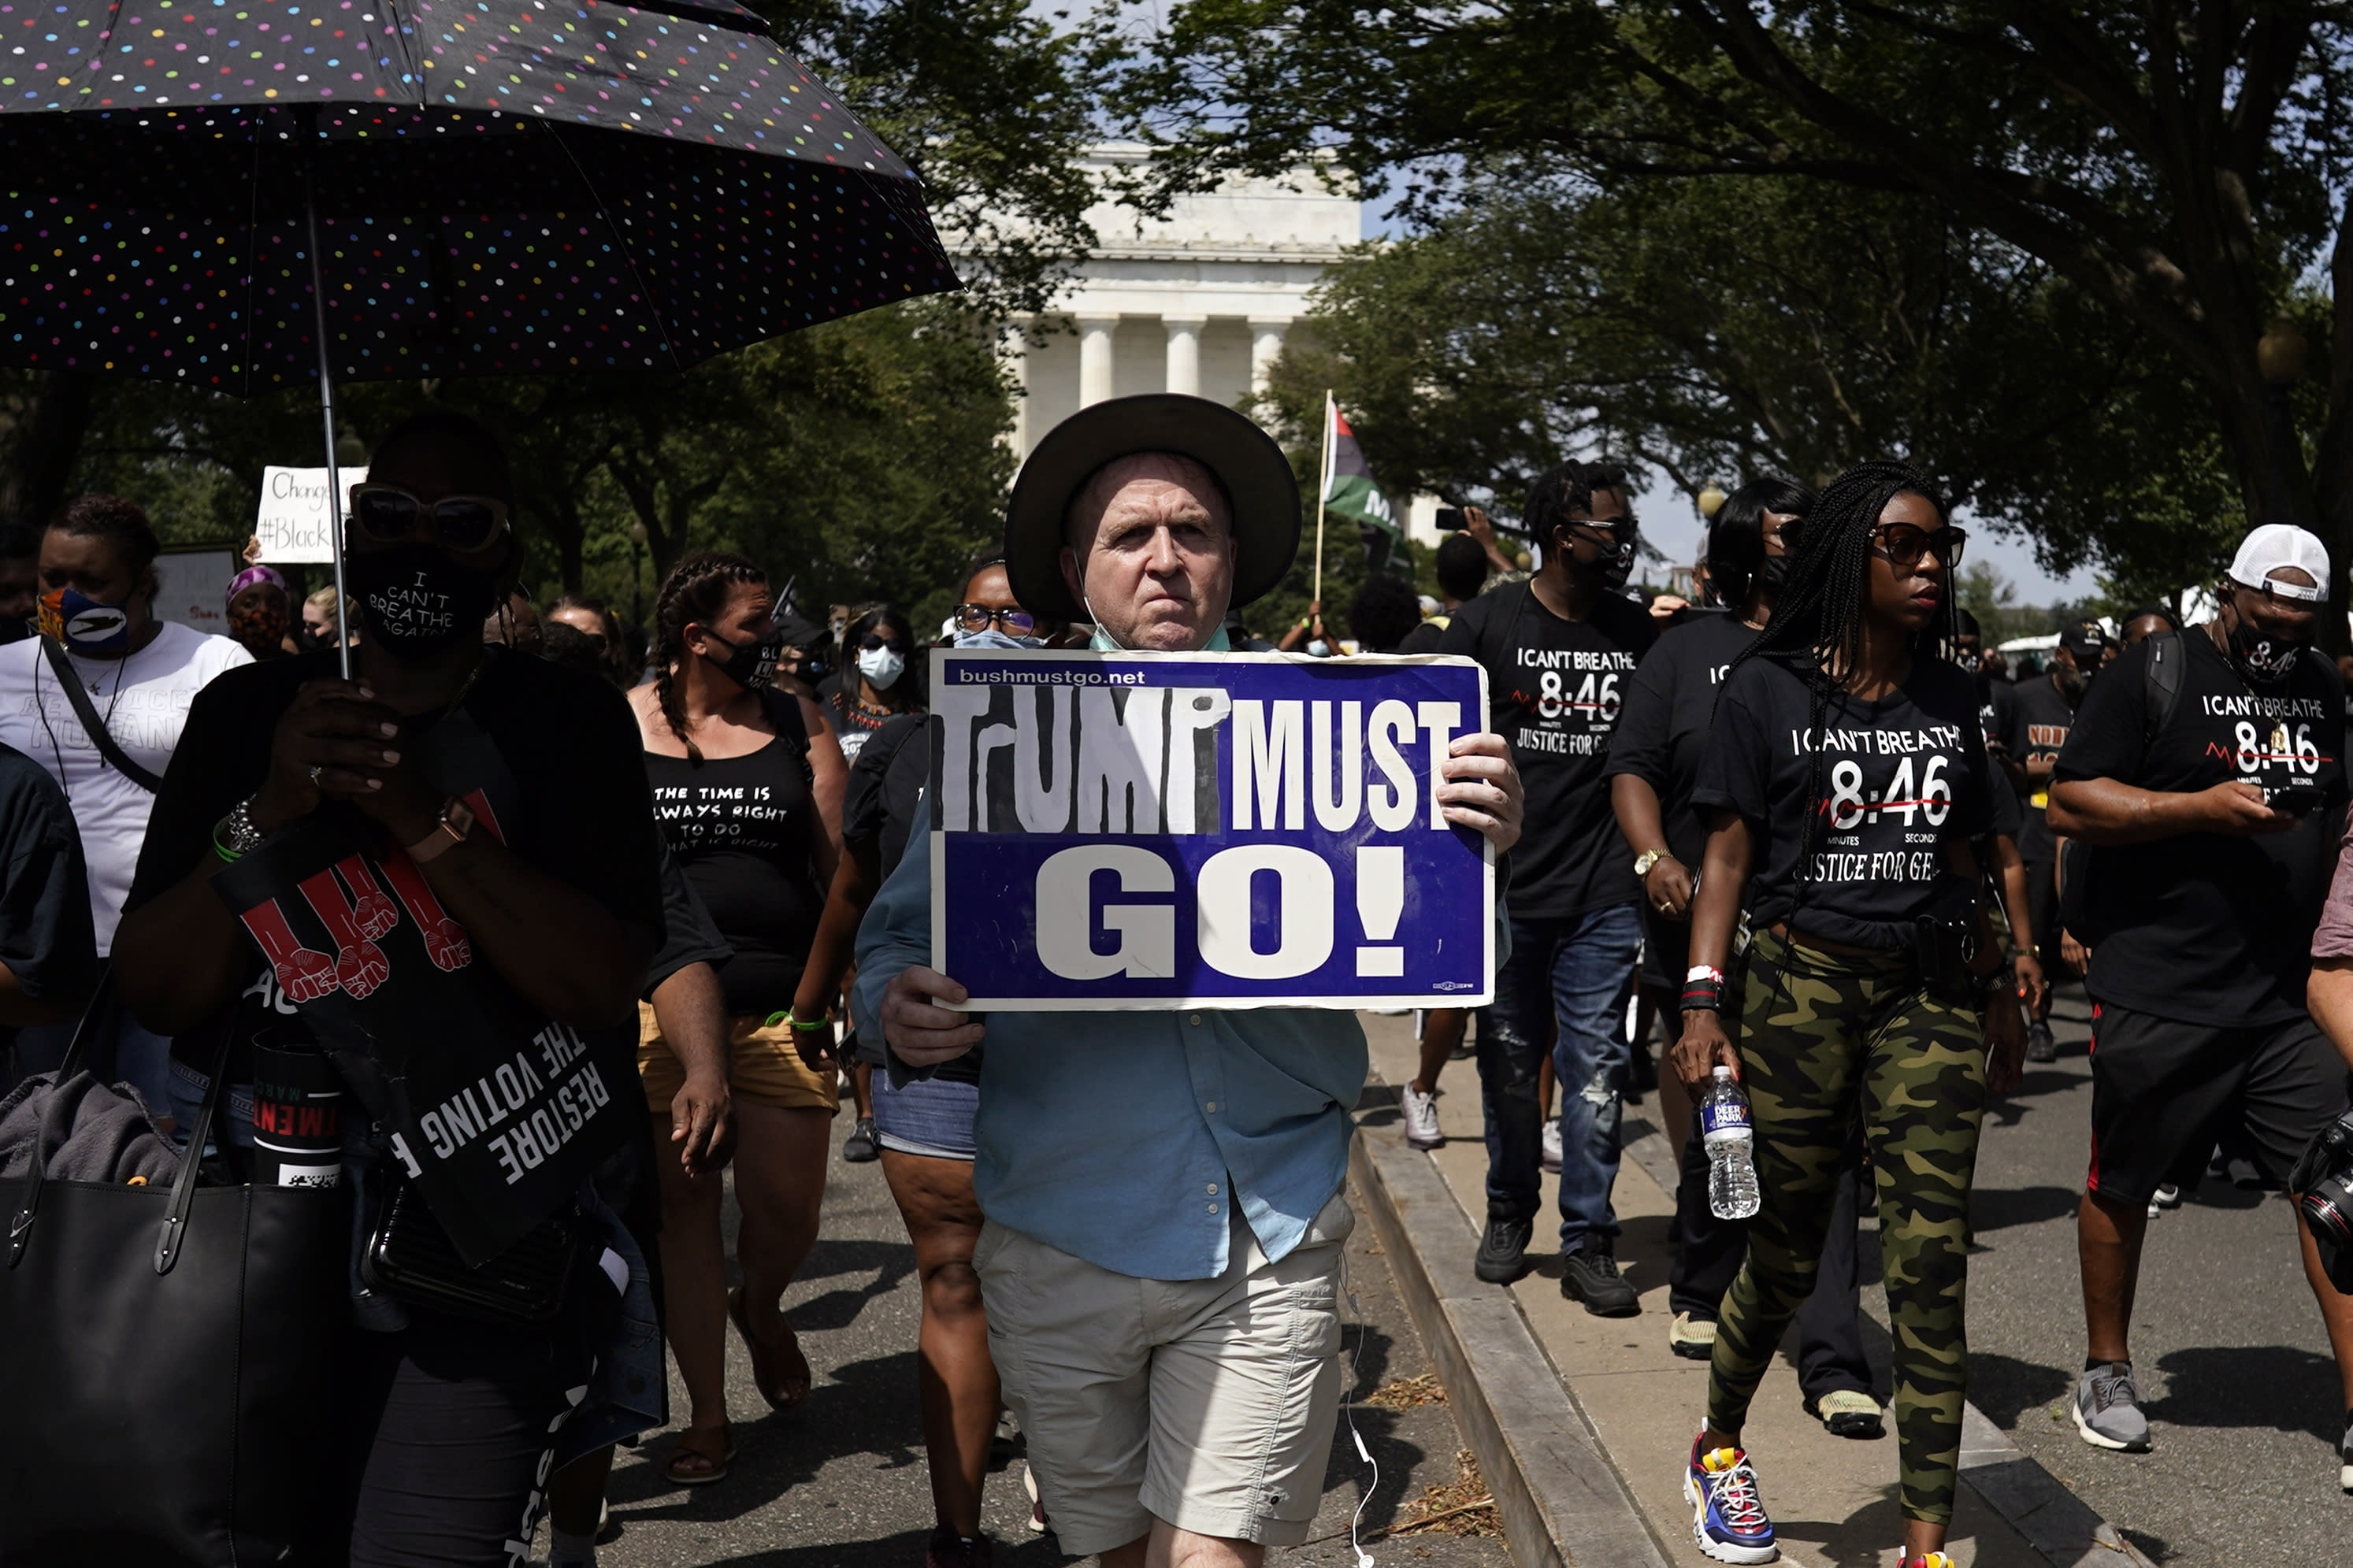 People march from the Lincoln Memorial to the Martin Luther King Jr. Memorial during the March on Washington, Friday Aug. 28, 2020, in Washington. (AP Photo/Carolyn Kaster)